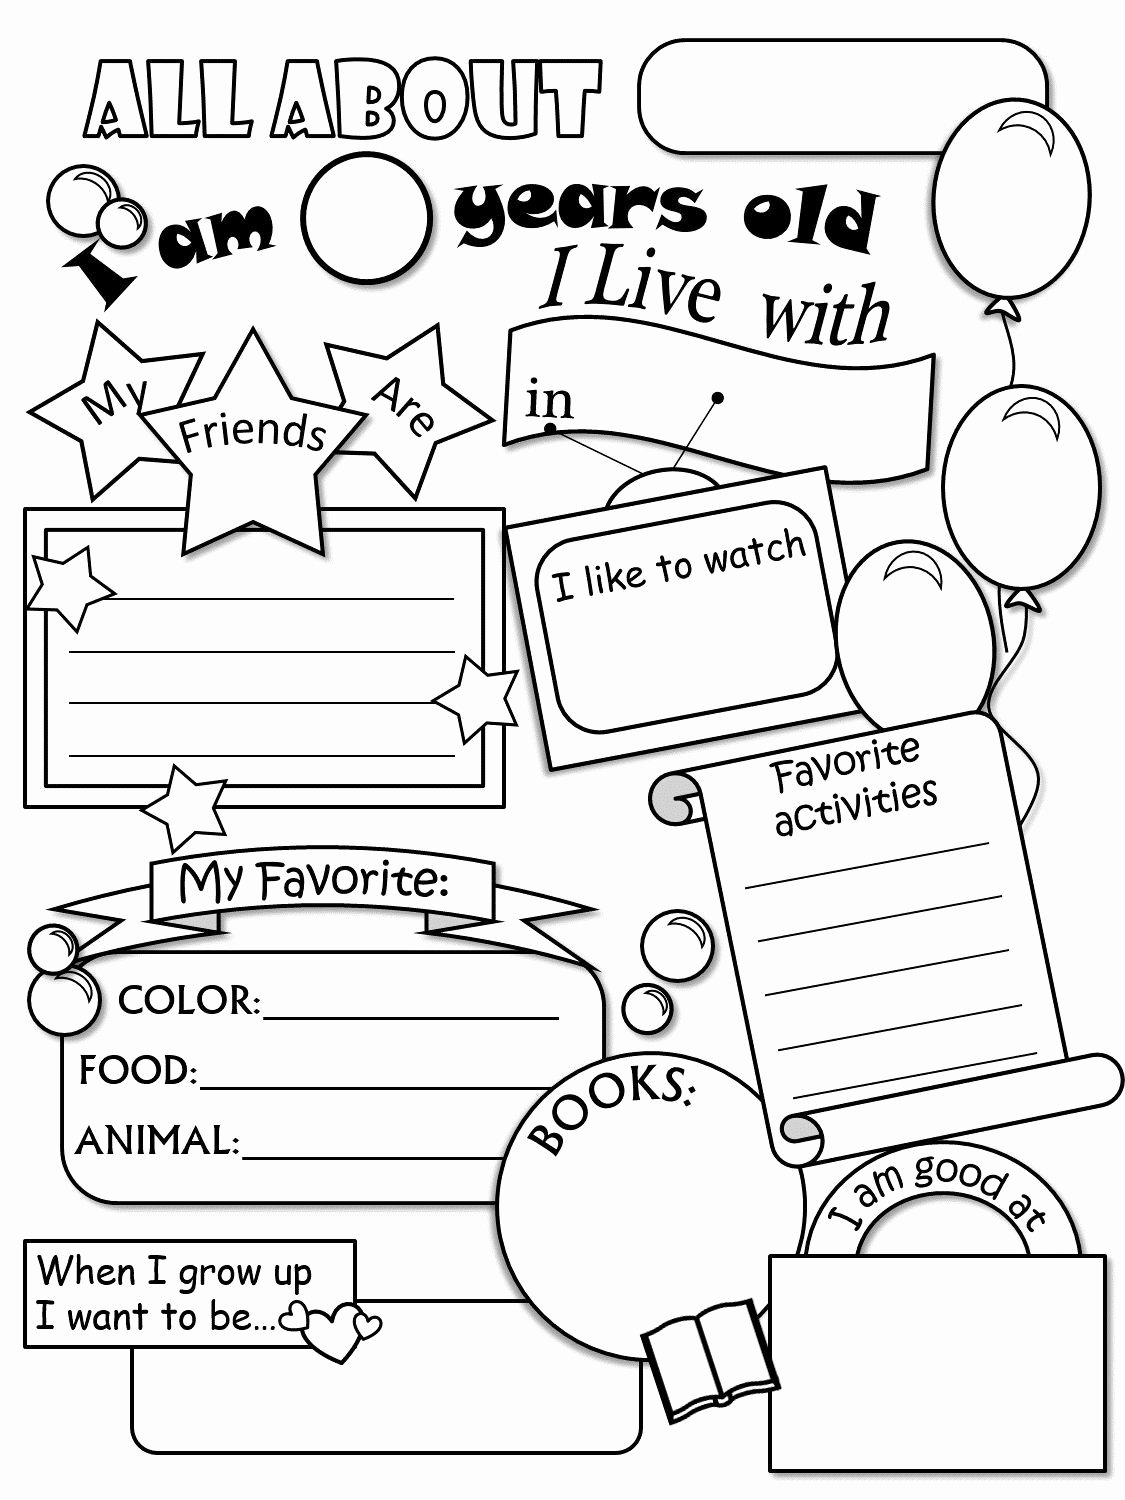 All About Me Worksheets for Preschoolers Lovely All About Me Worksheet